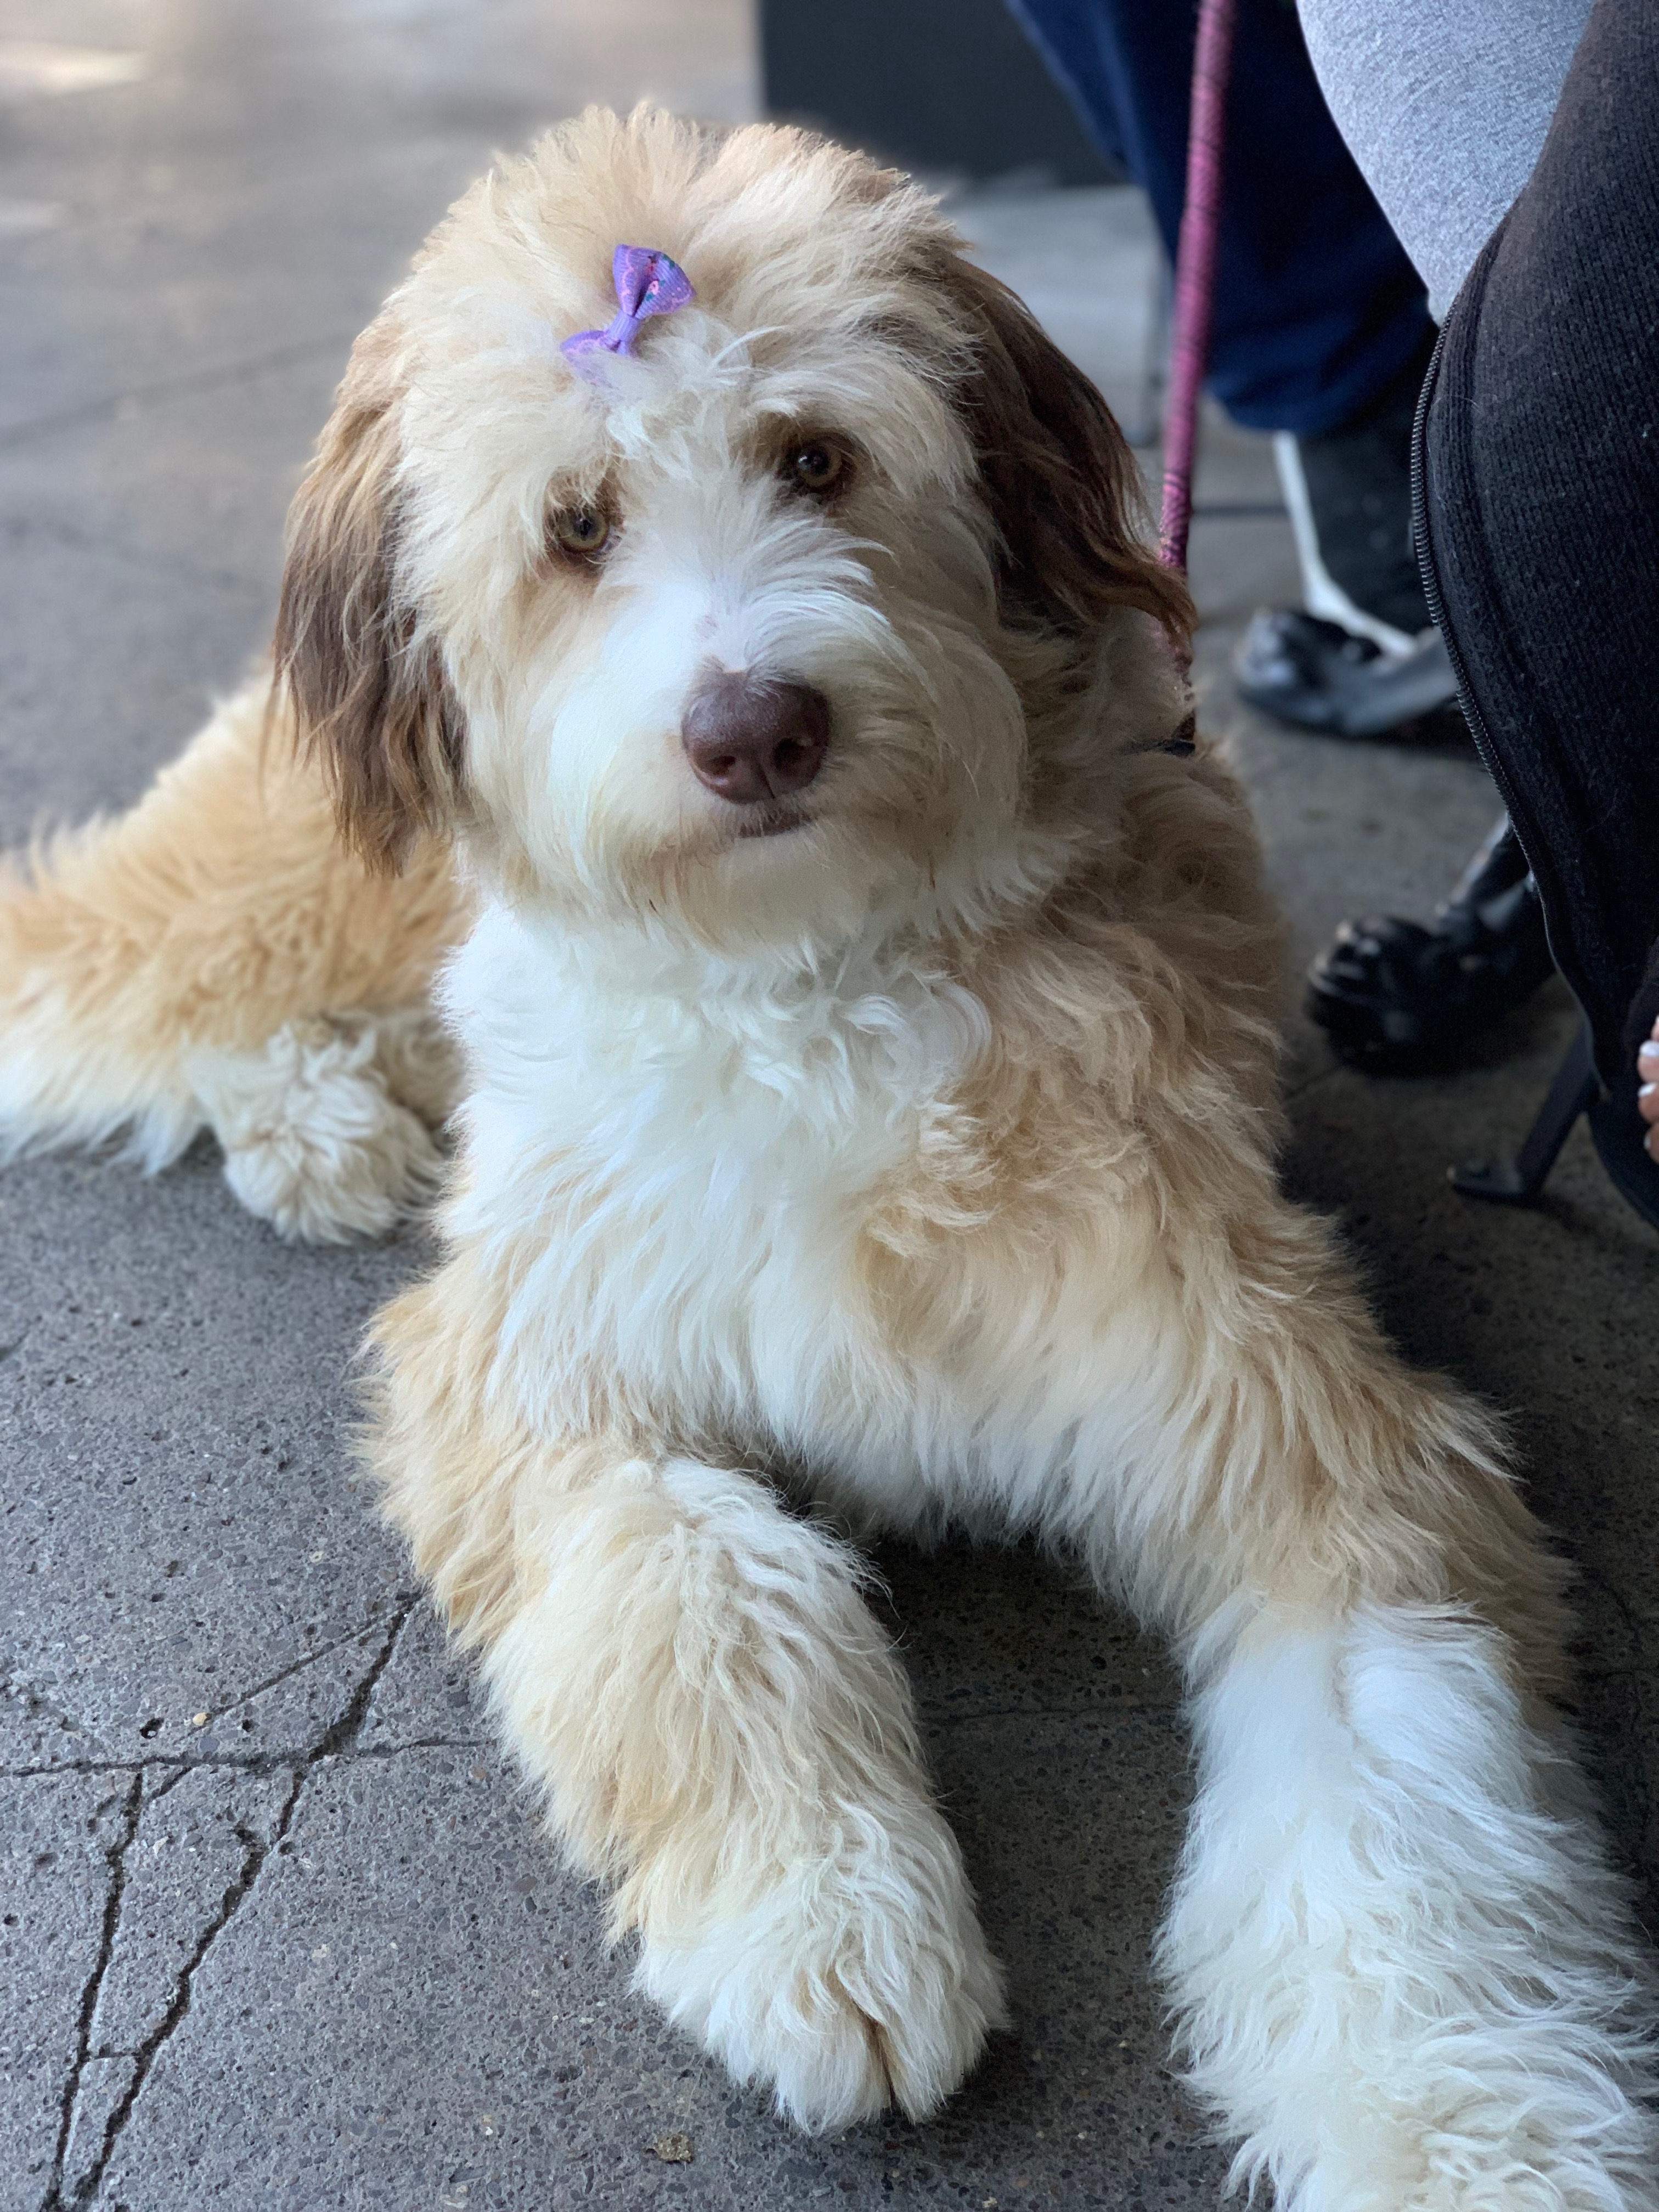 Bernese Mountain Dog Poodle Mix With A Little Bow In Her Hair